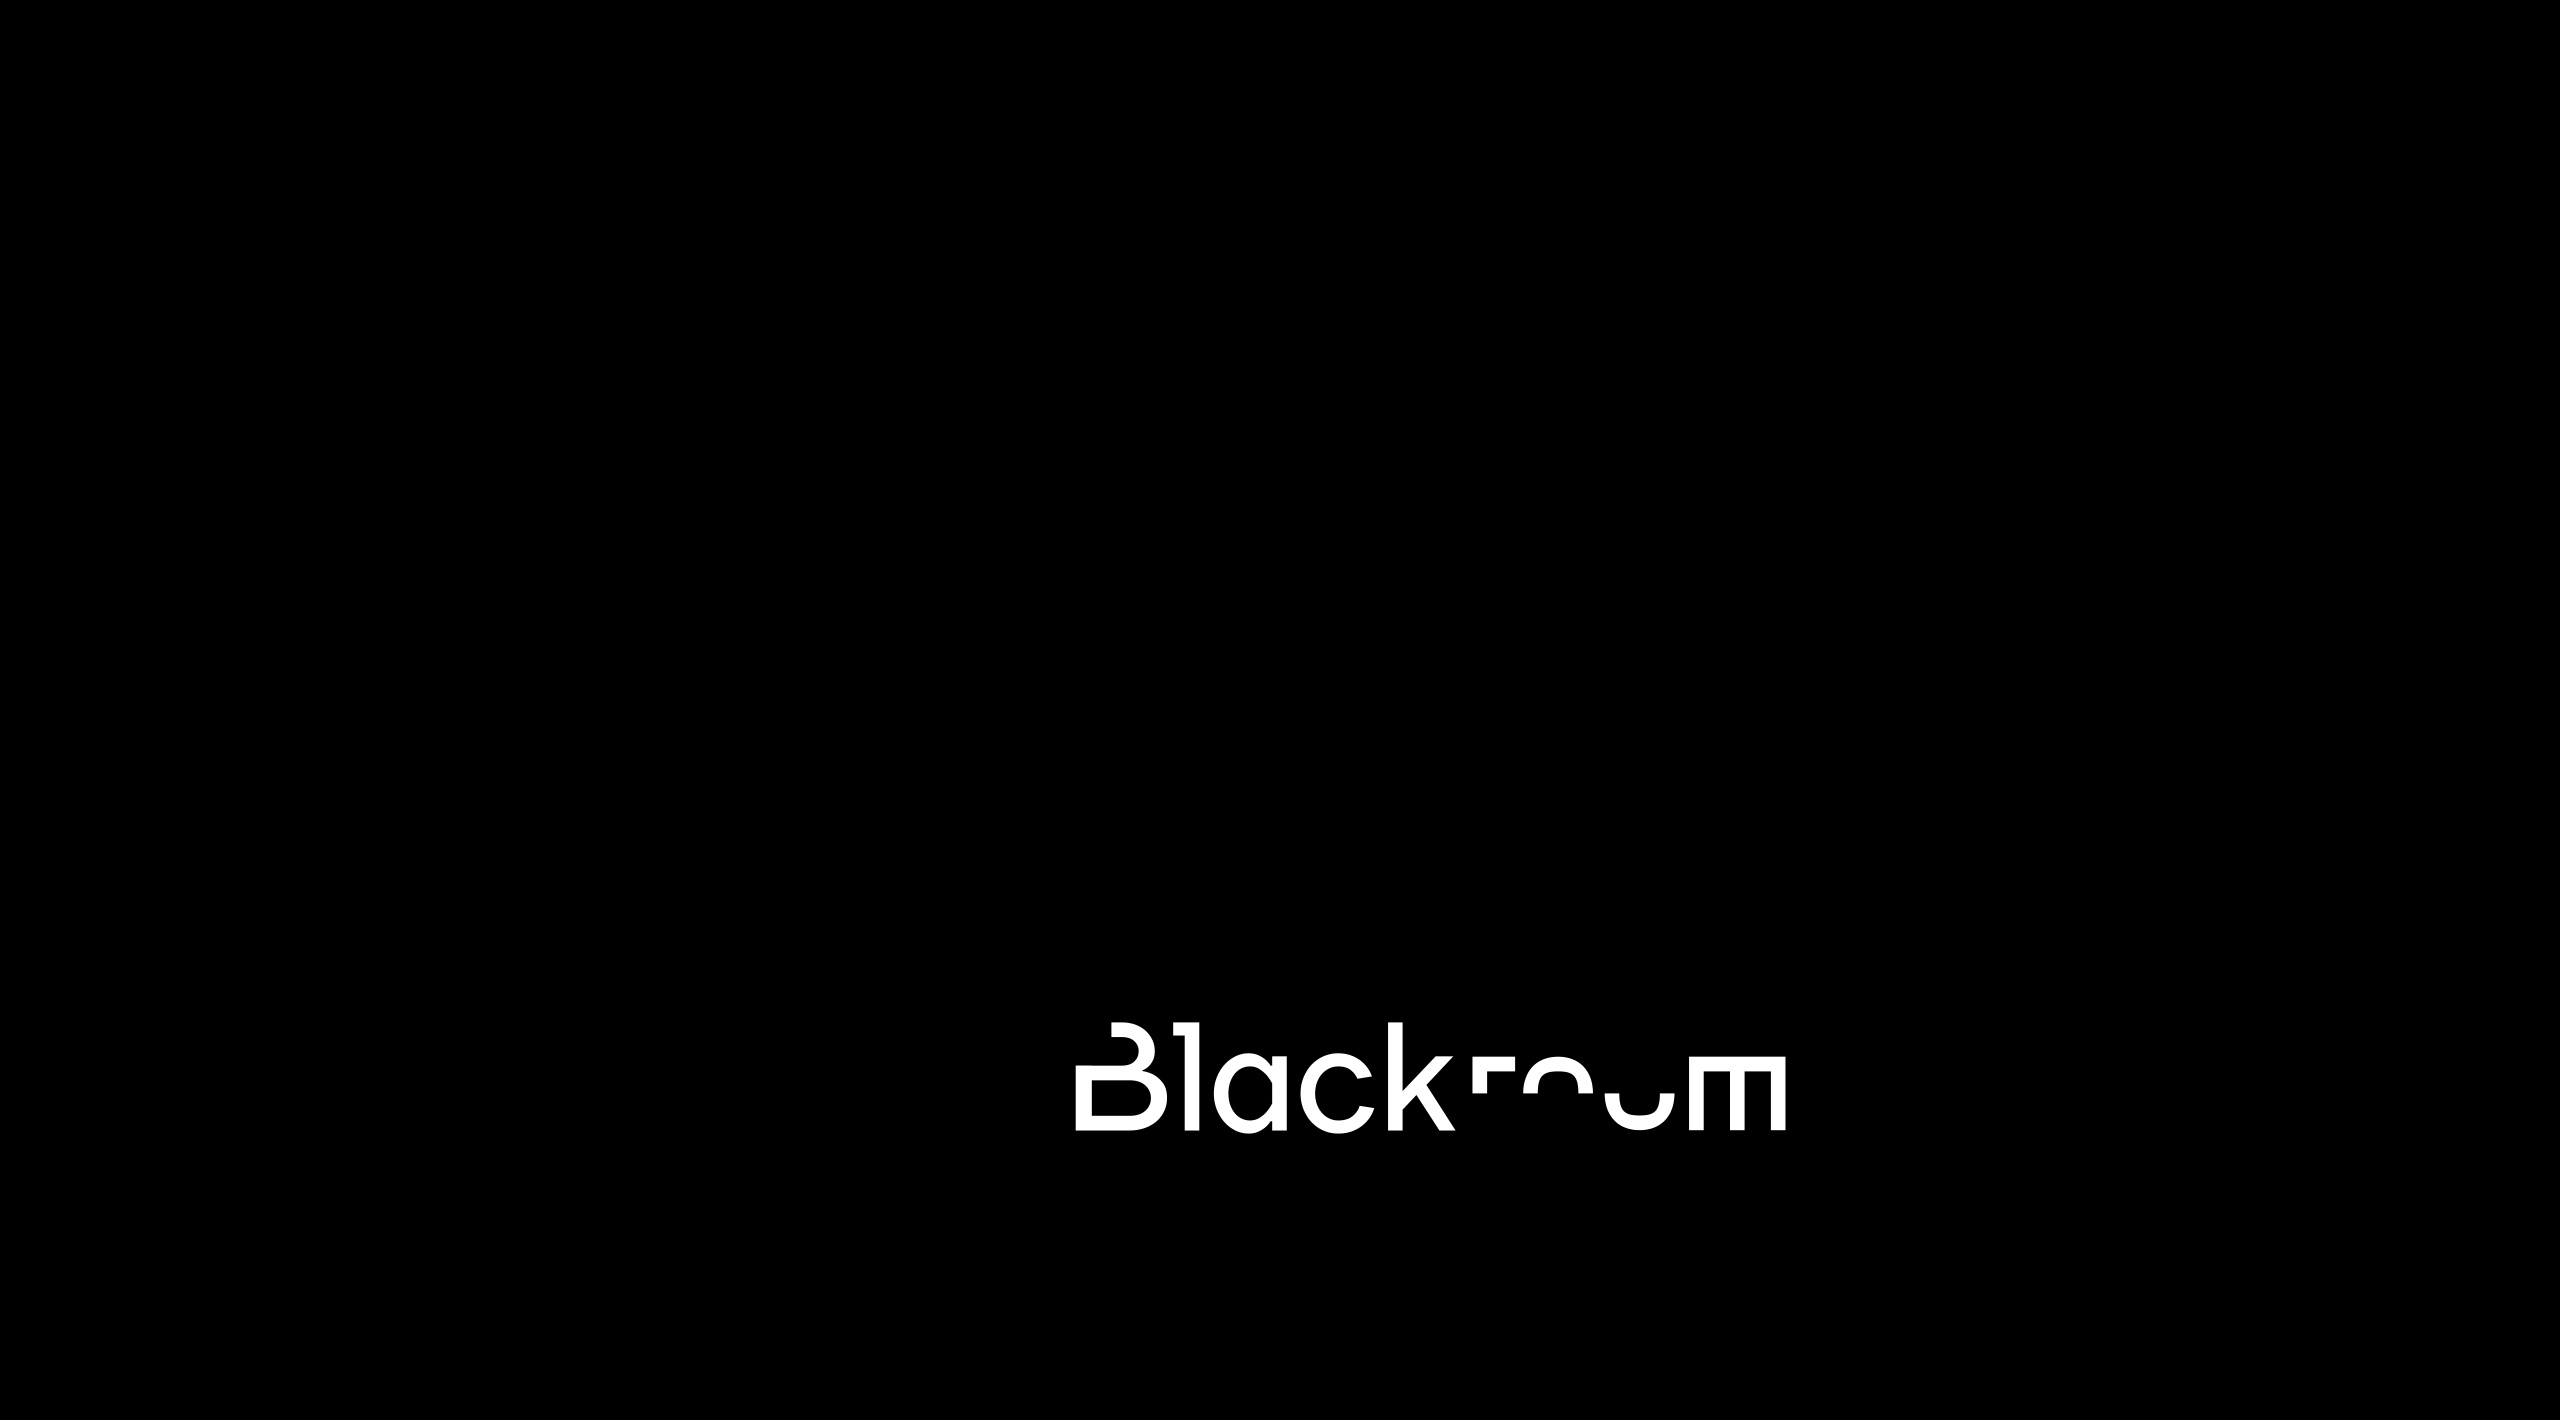 Branding & Graphic Identity for the Black Room brand | Design by erva